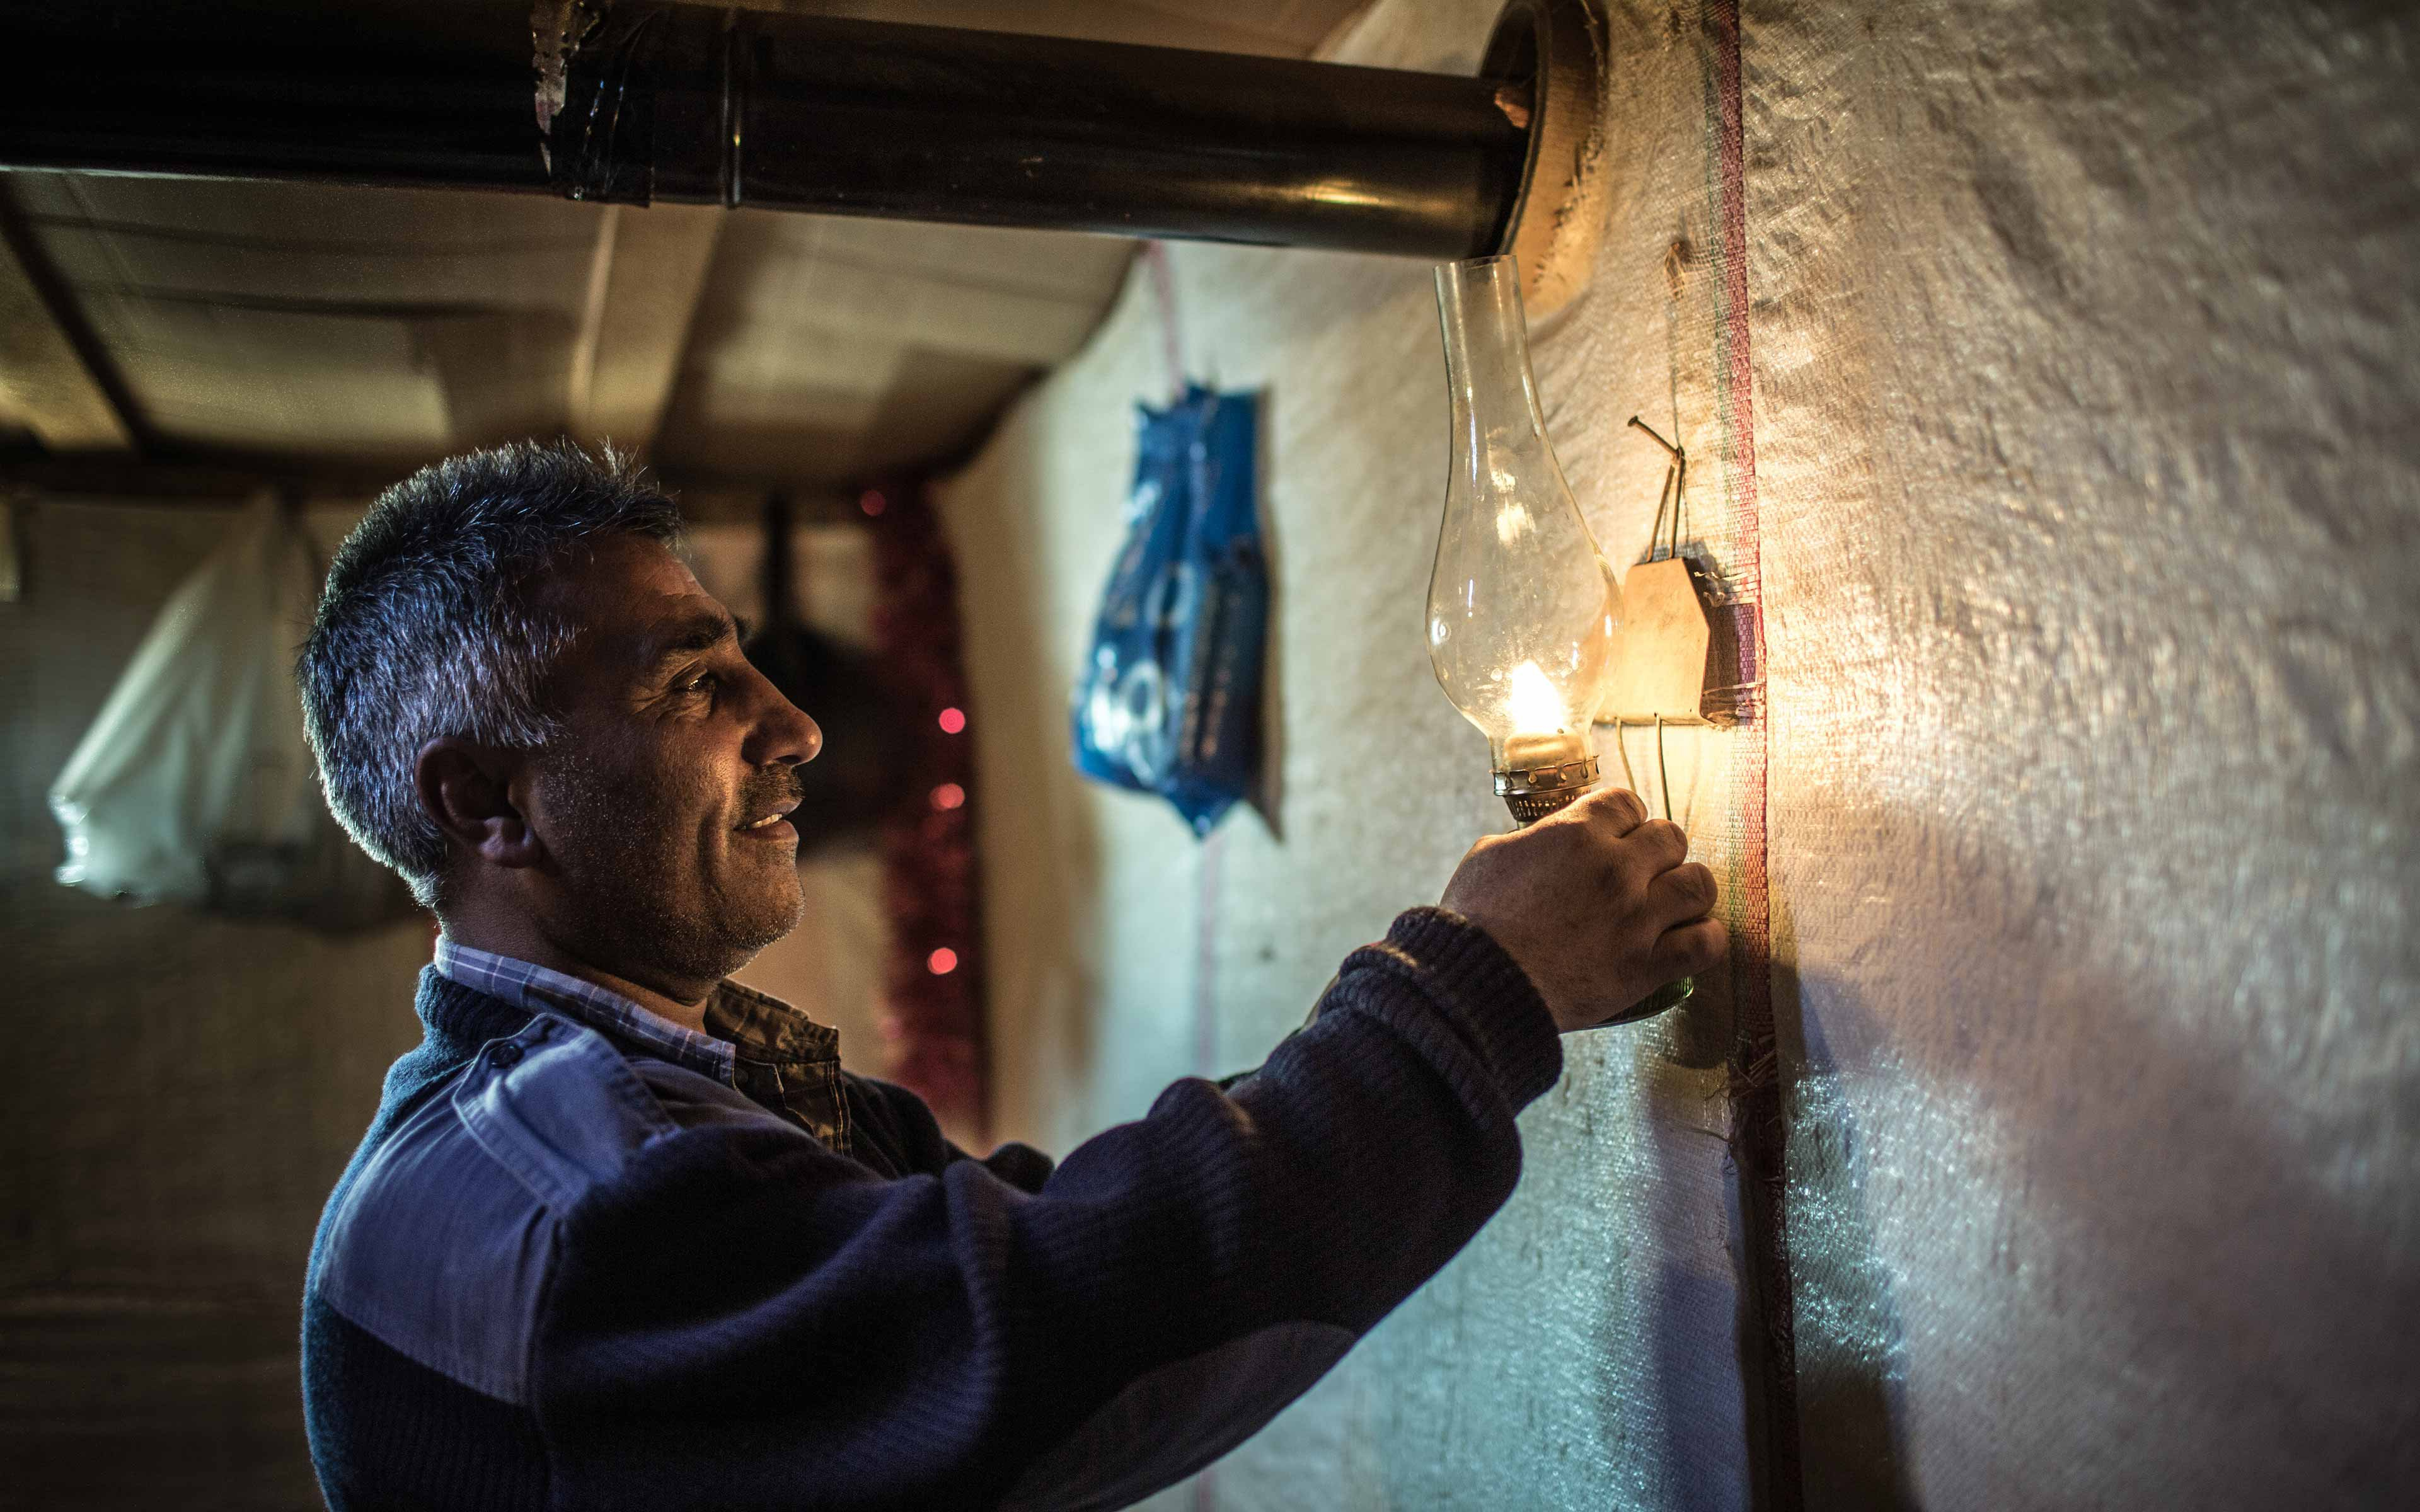 Abbas lights a kerosene lamp in a shelter made of plastic sheeting. He and his family fled from a suburb of Homs, Syria, and now live here in Lebanon. About 70 percent of Syrian refugees in Lebanon live below the national poverty line of $4 per person per day.